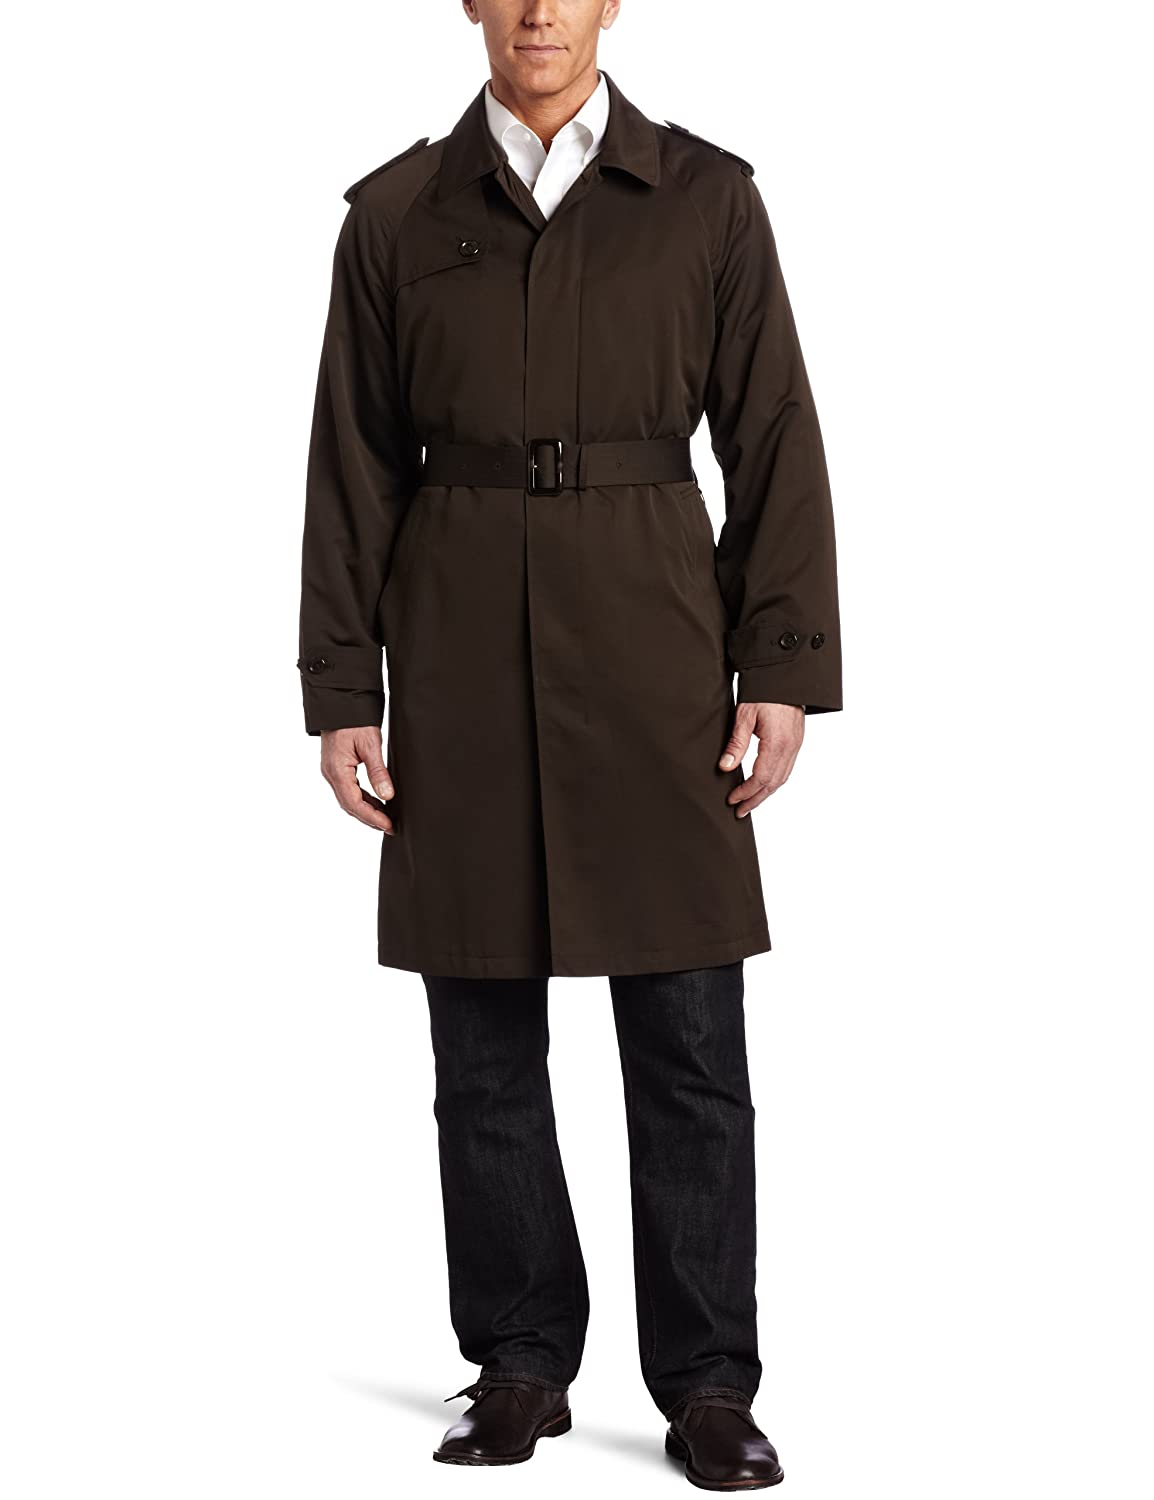 In The Trenches: 12 Best Trench Coats For MenASOS Tobacco Trench CoatTop Man Black Belted Trench CoatCole Haan ZeroGrand Trench CoatNau Copenhagen Recycled Down Trench CoatJ. Crew Portsmouth Trench CoatBaracuta G10 Modern Classic Trench Coat (3 more items).